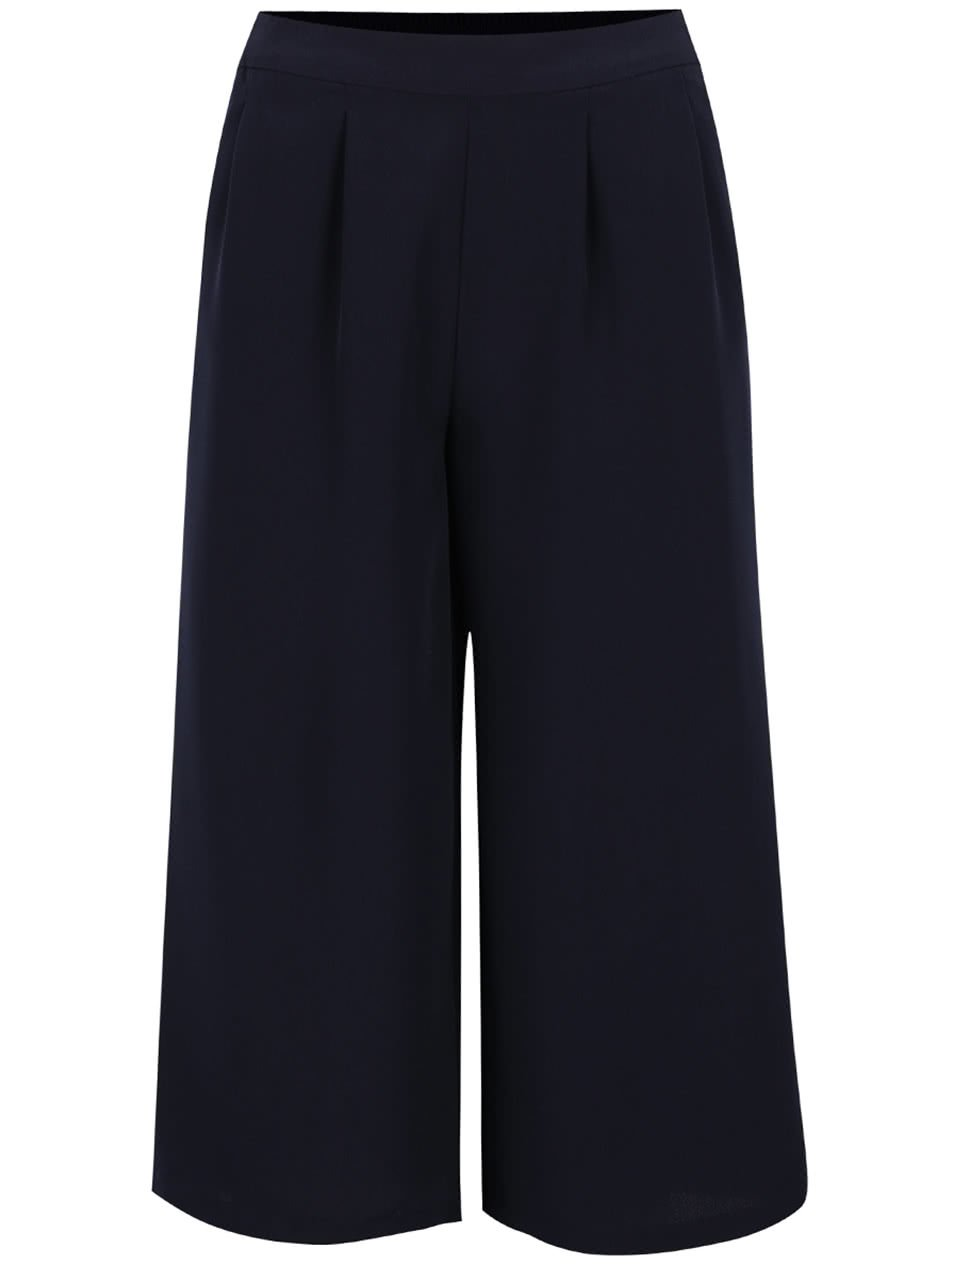 Tmavomodré culottes nohavice ONLY Charlotte